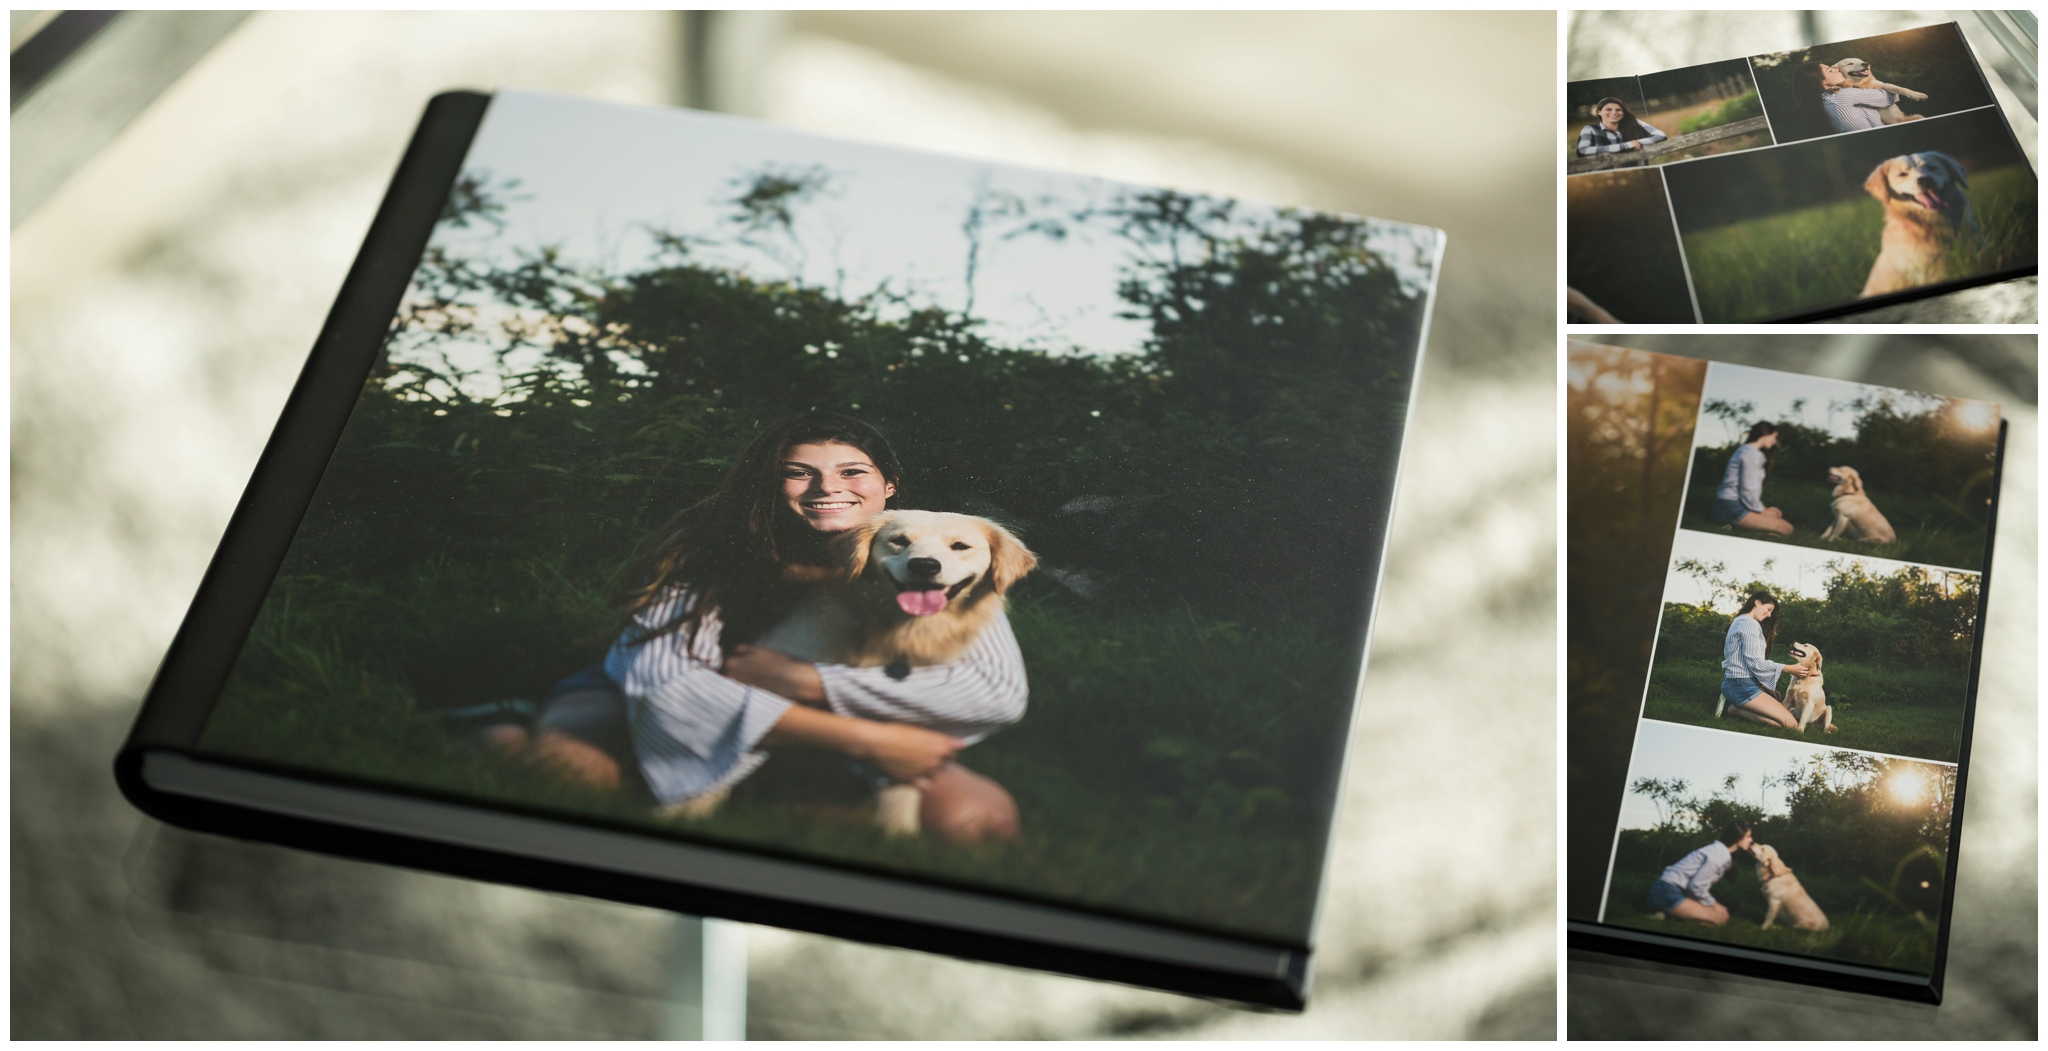 Albums include the images of YOUR choice. Extra thick pages with lustre printed images, and a protective case (not shown). Album prices vary depending on size and # of images you choose.